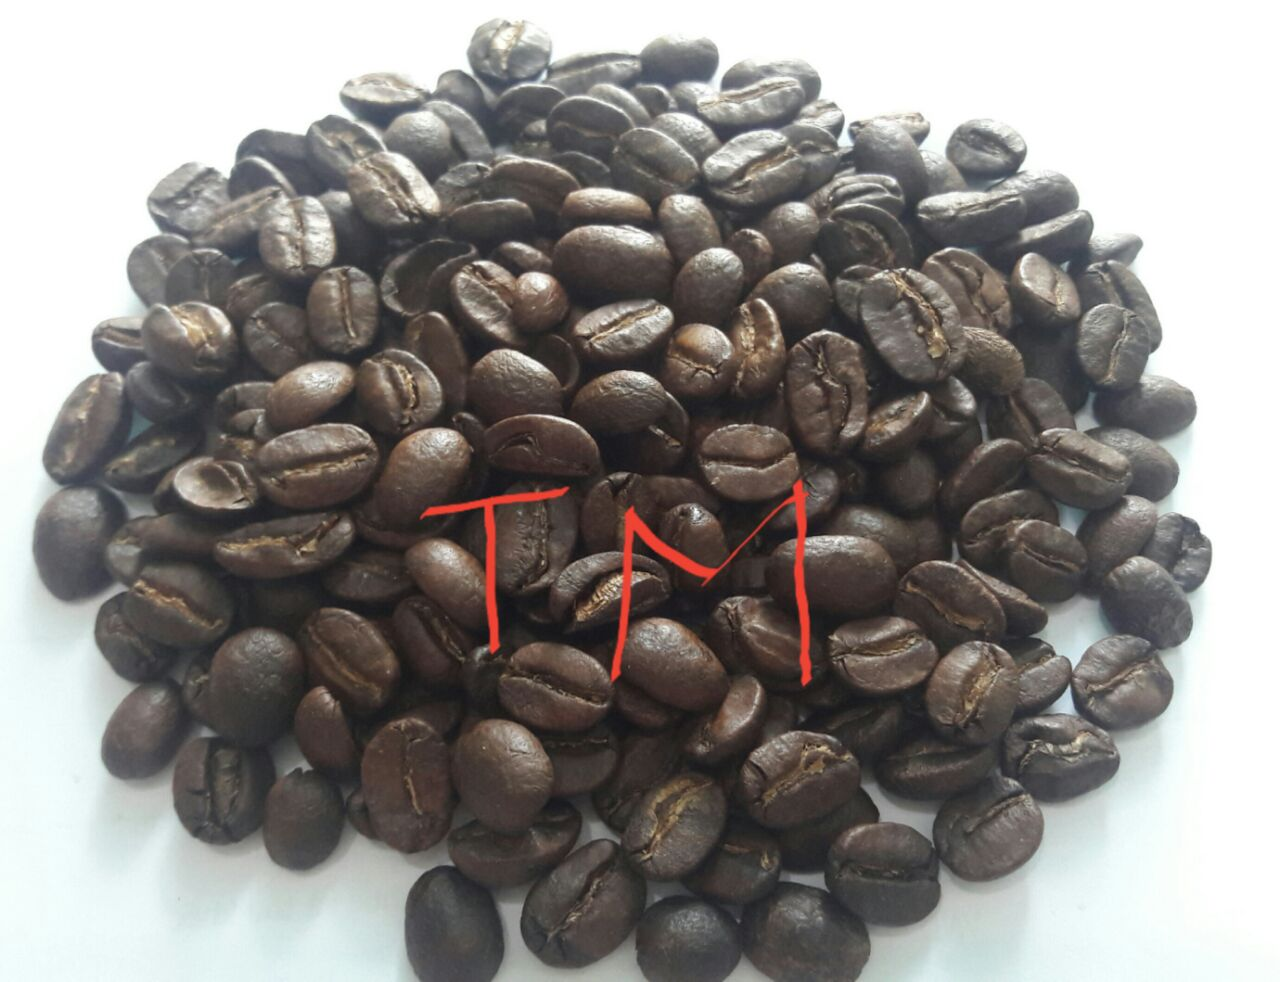 High quality roasted arabica coffee beans